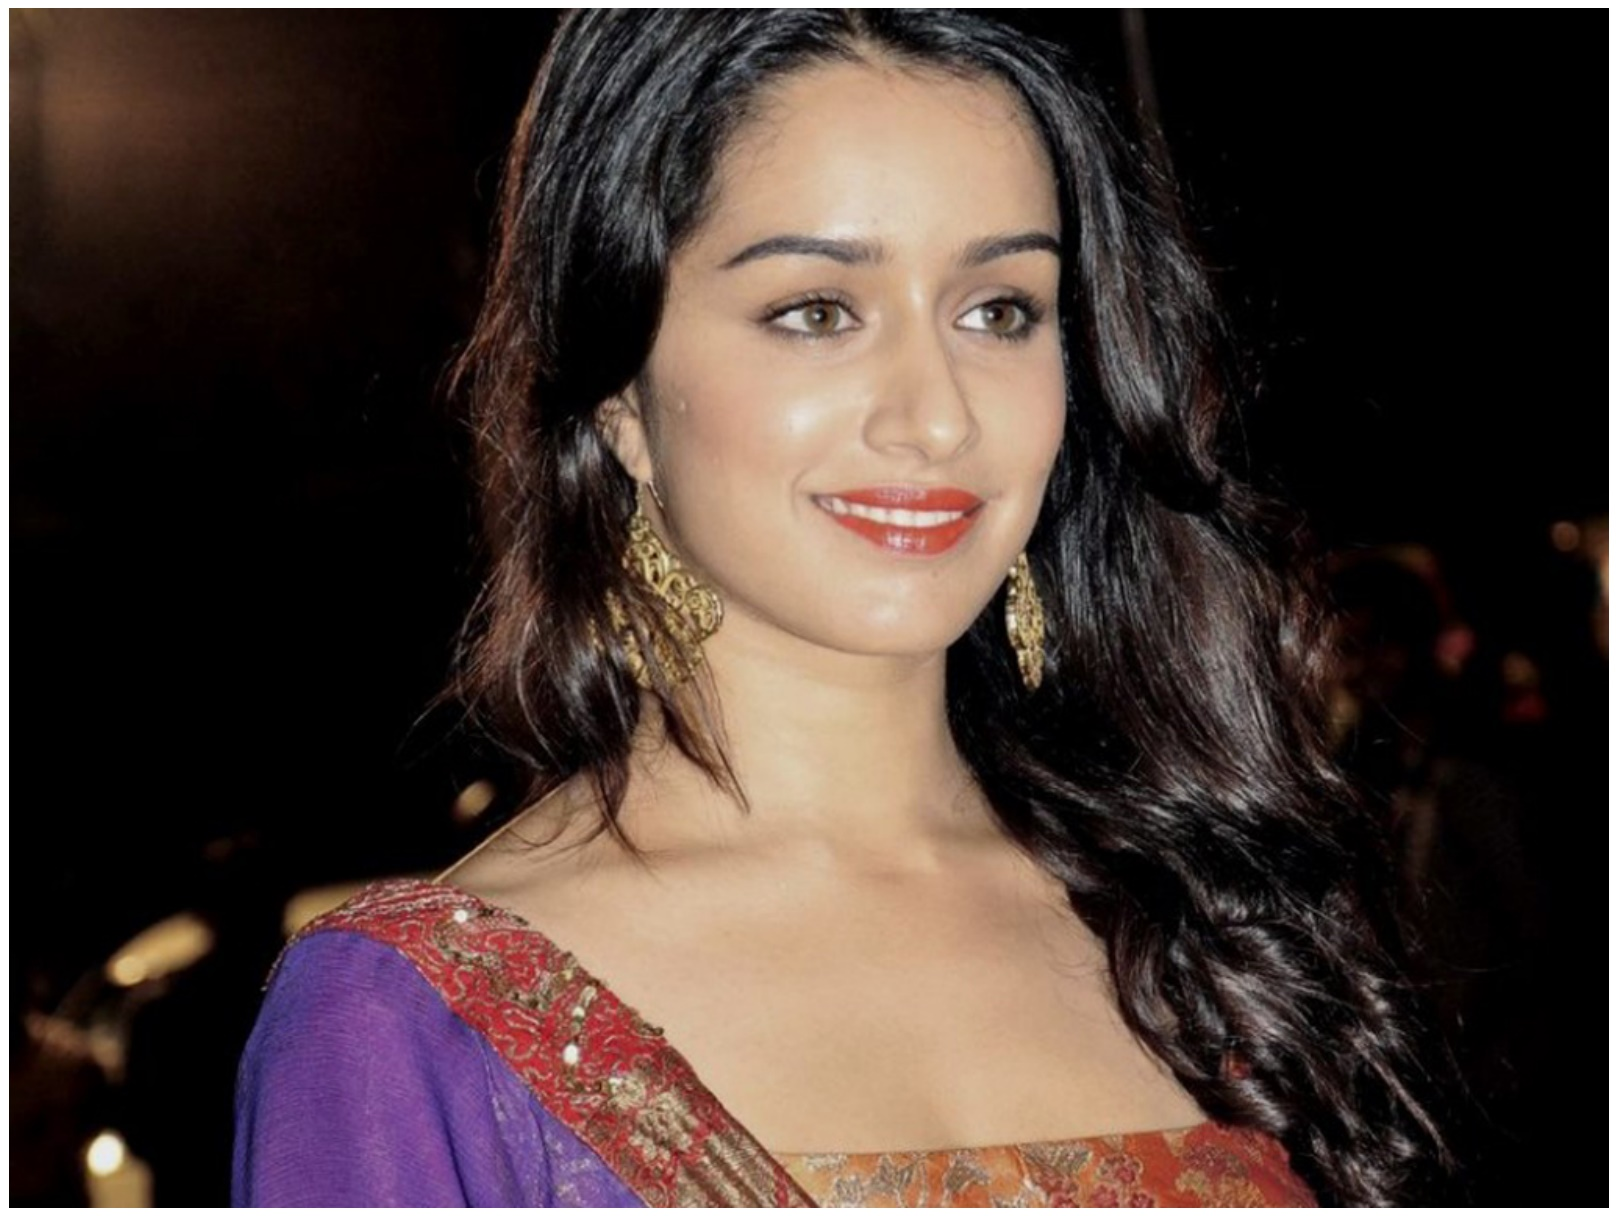 bollywood actress shraddha kapoor 2017 hd wallpapers | hd walls